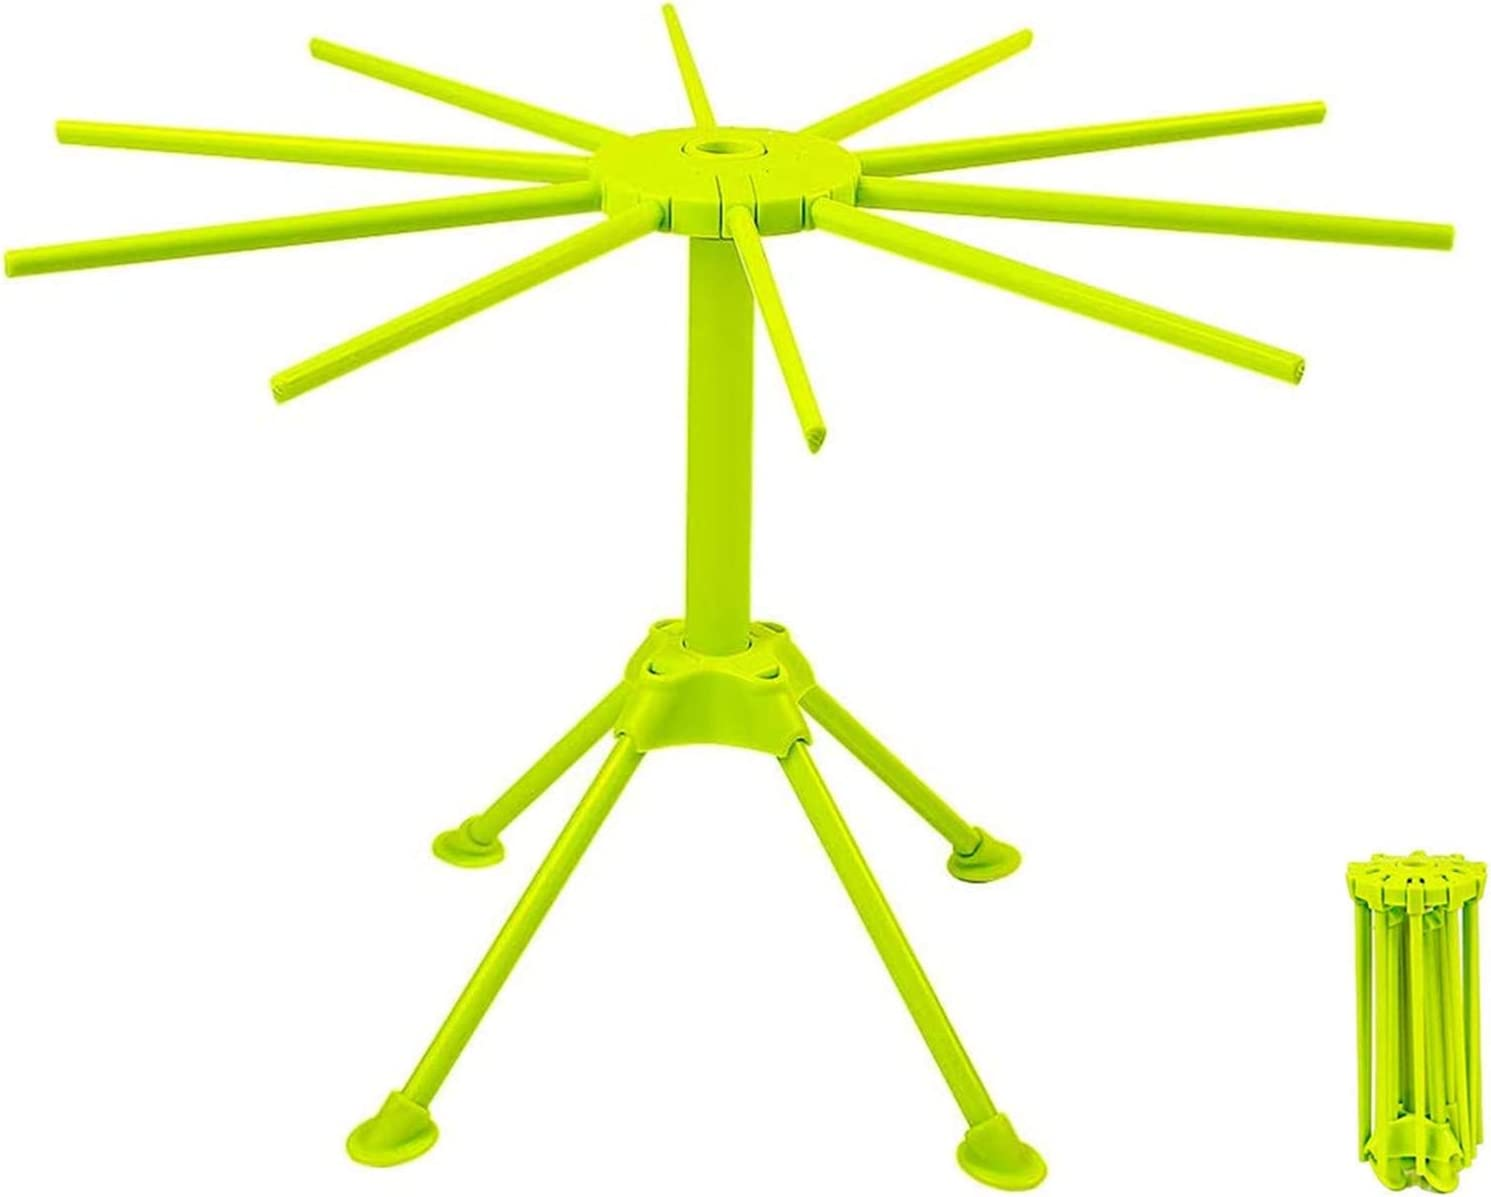 HOUPDA Pasta Drying Rack Collapsible Noodle H Ranking TOP12 Stand Virginia Beach Mall 10 With Bar